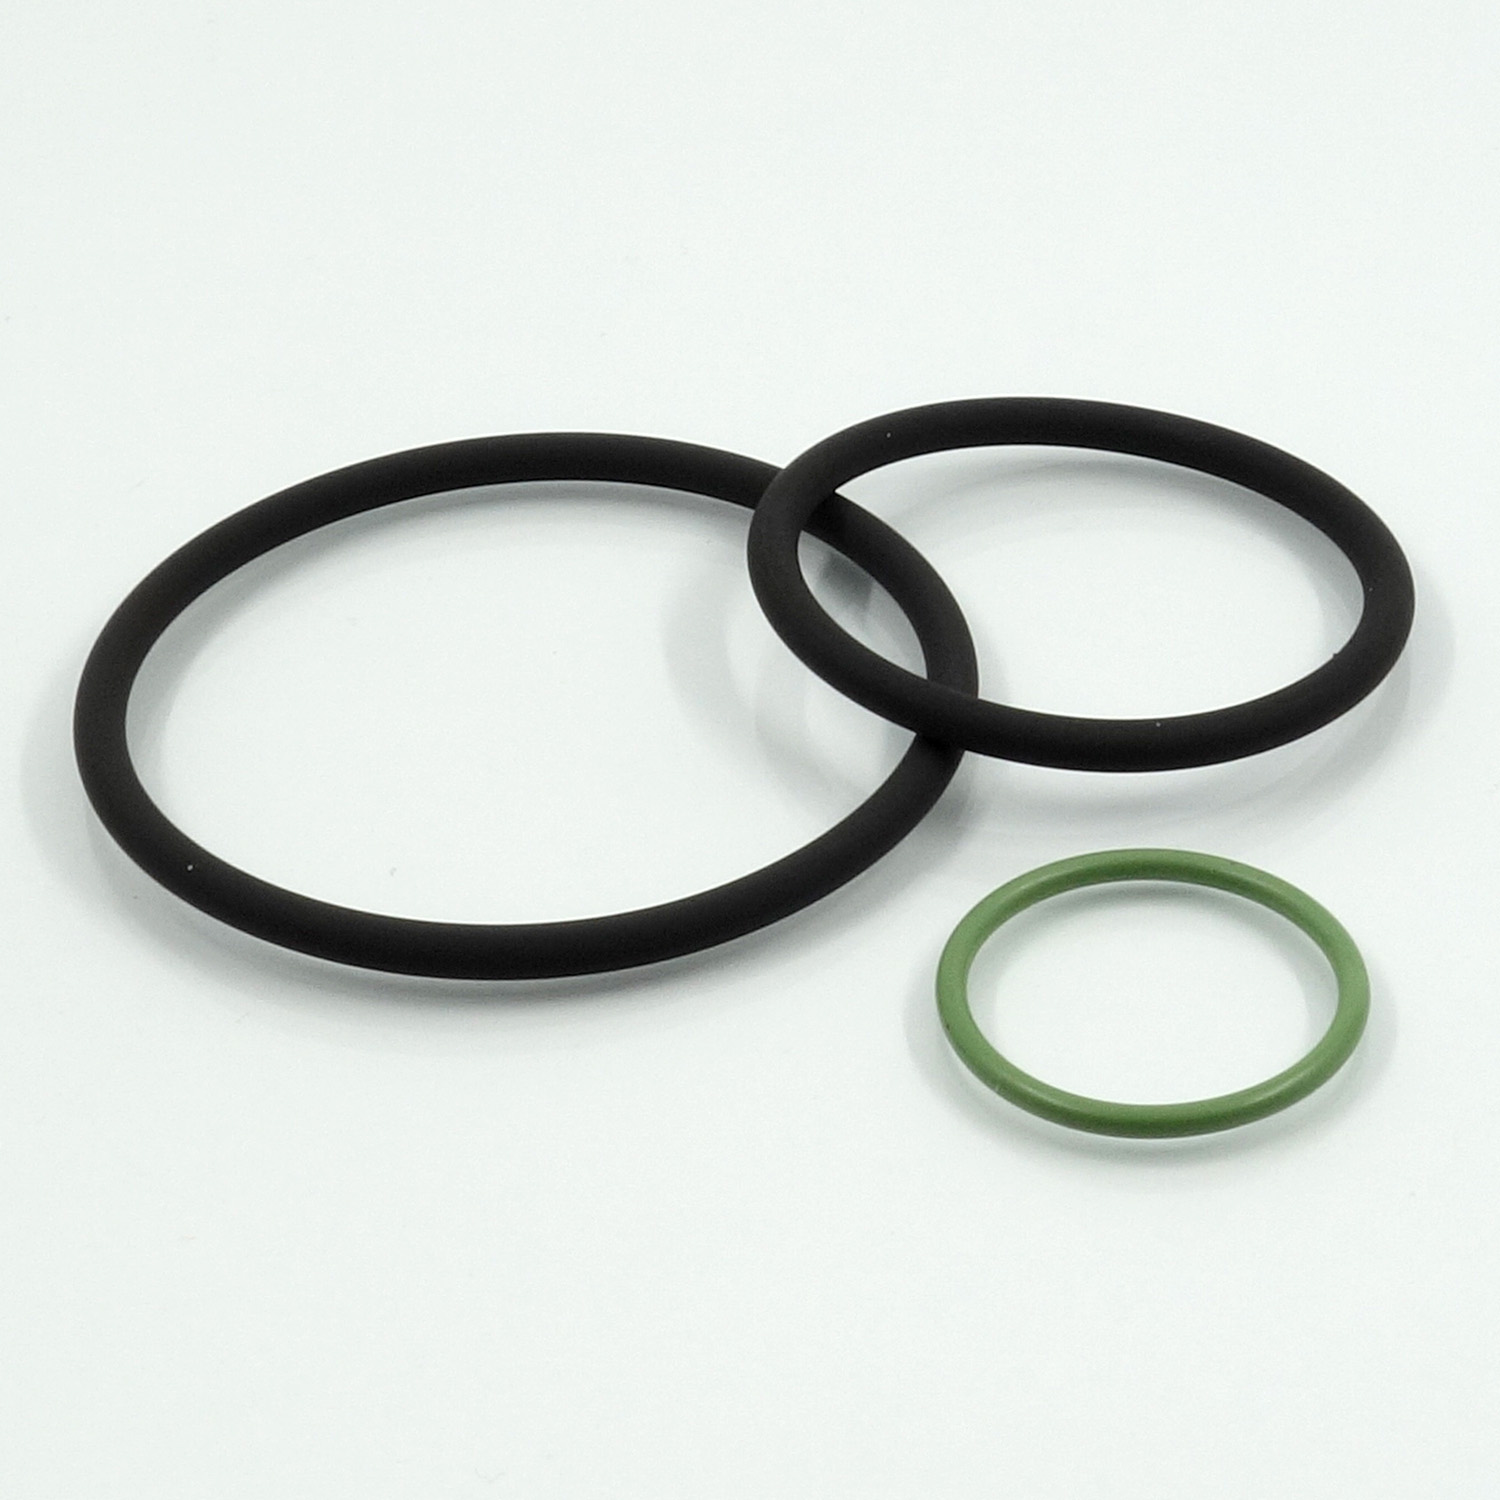 BEST O-RING KIT